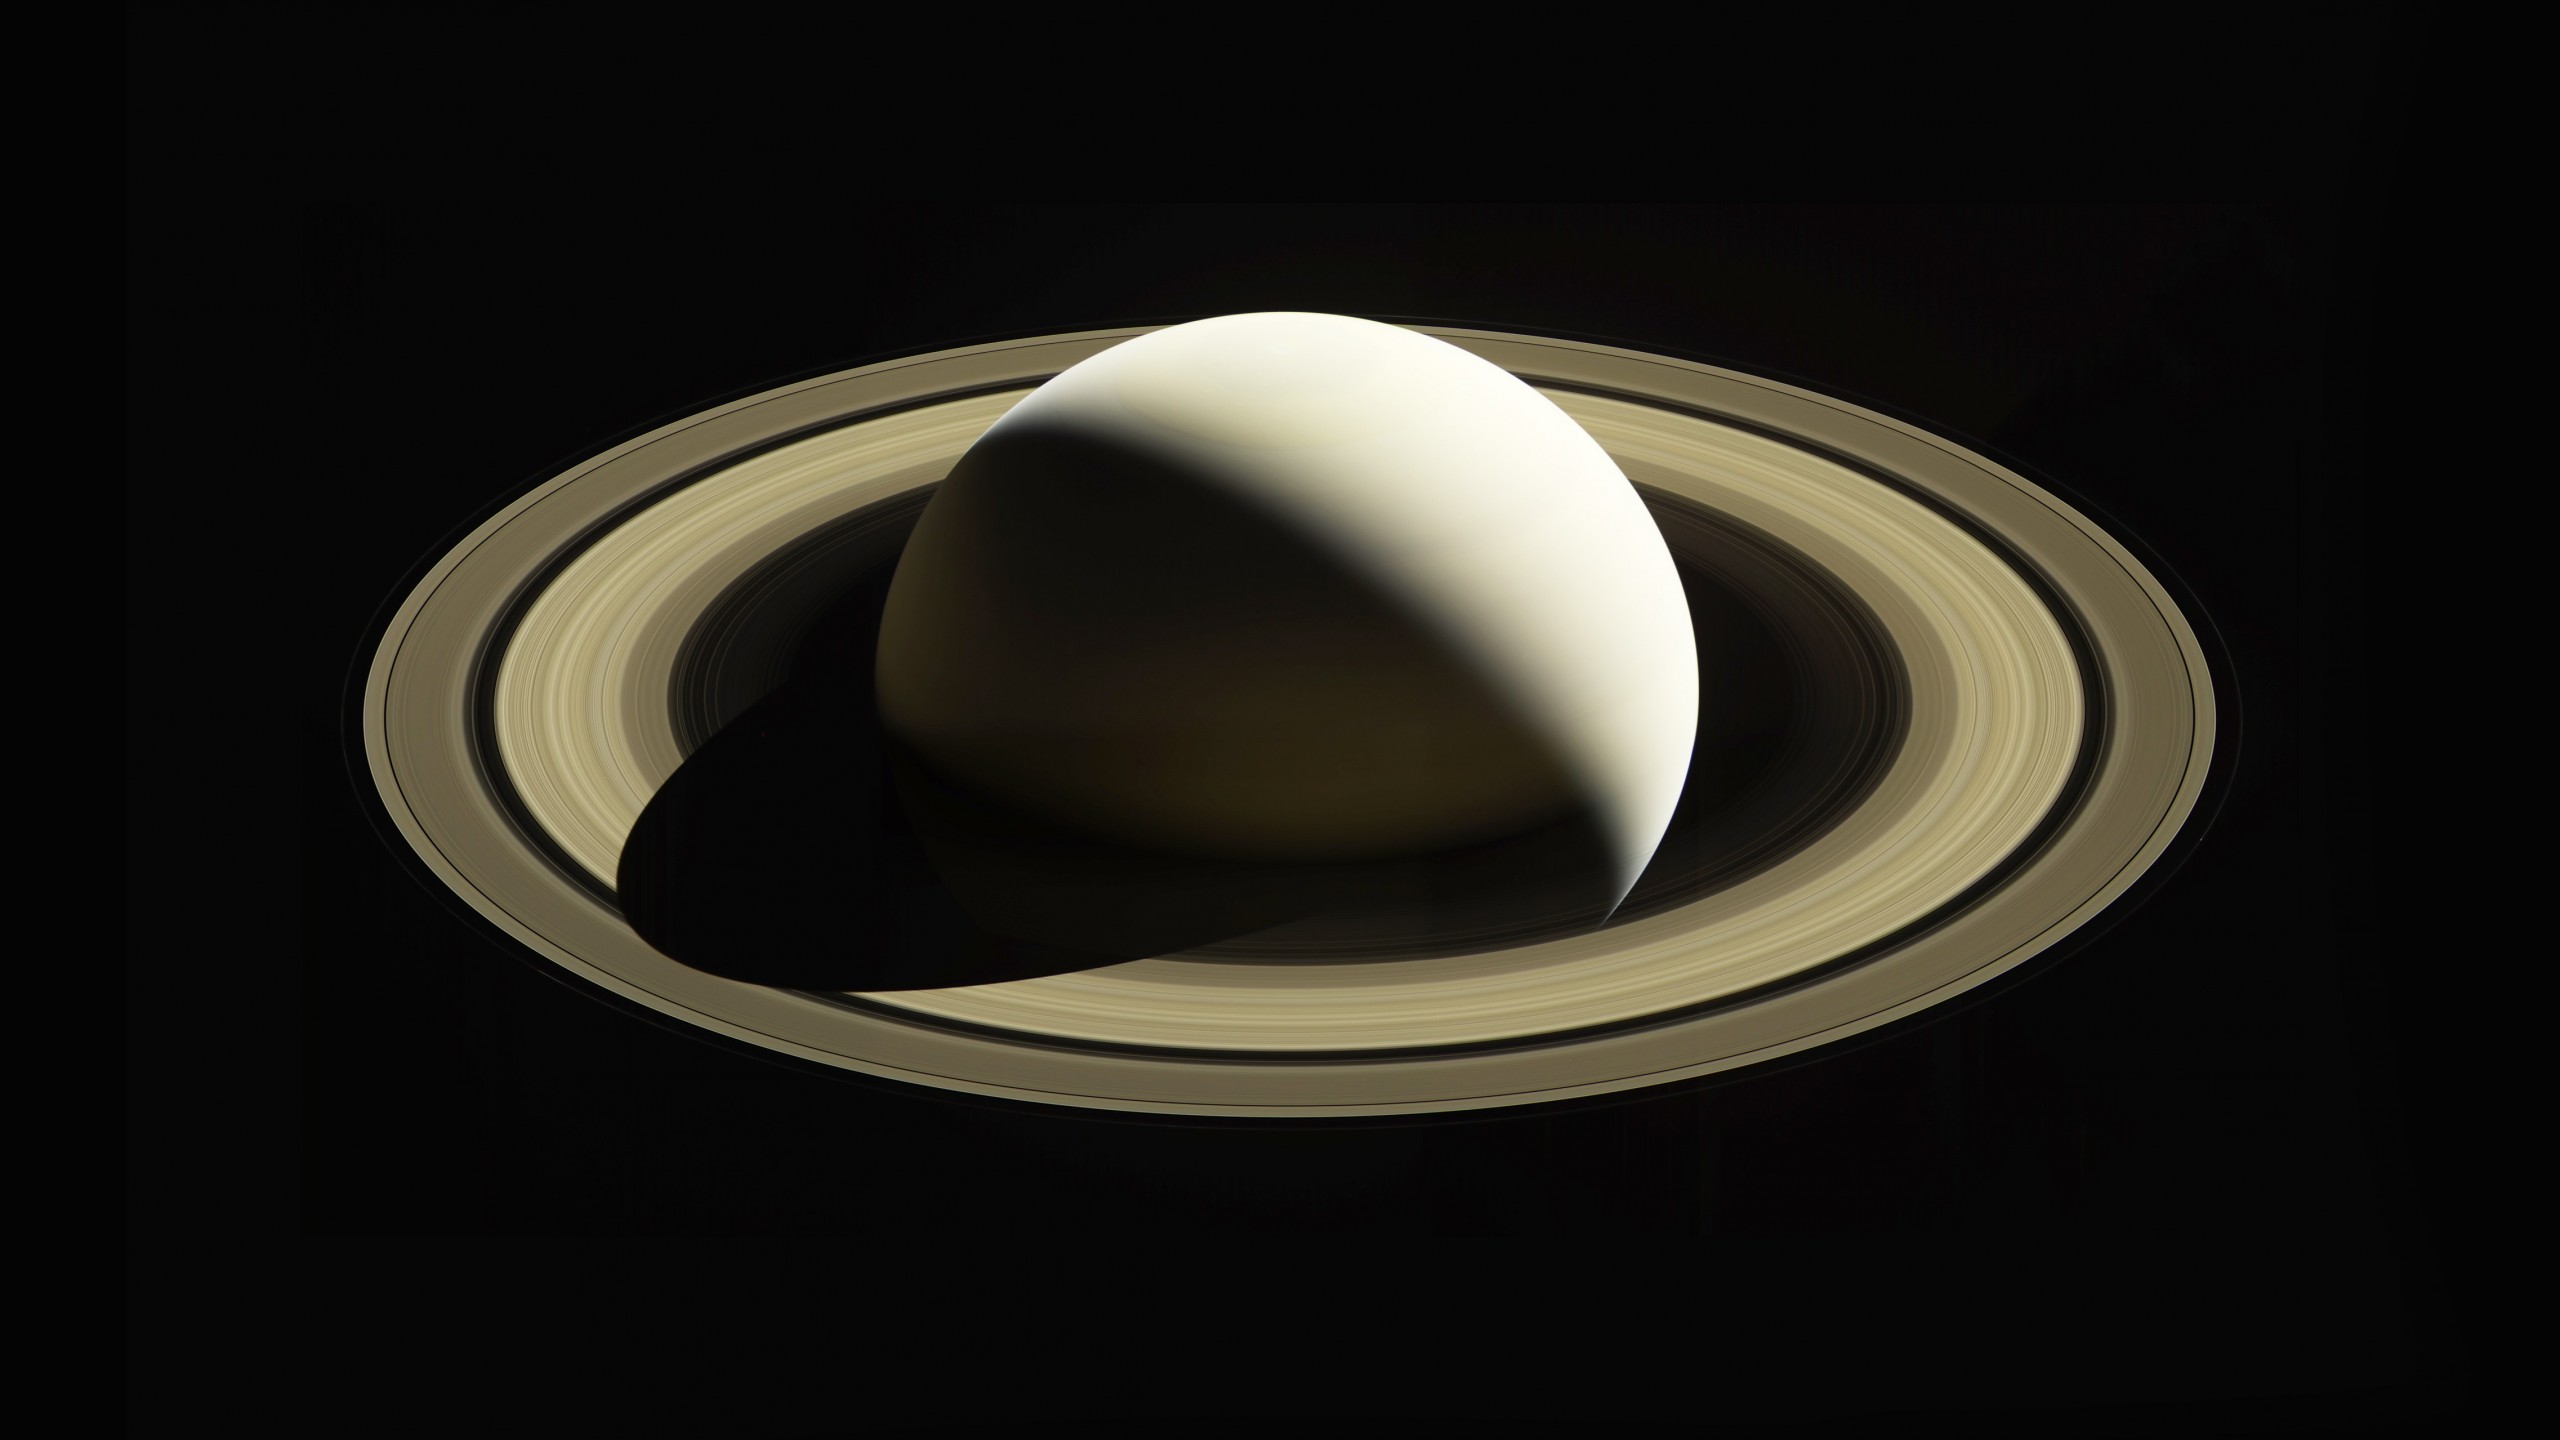 saturn planet wide wallpaper 62307